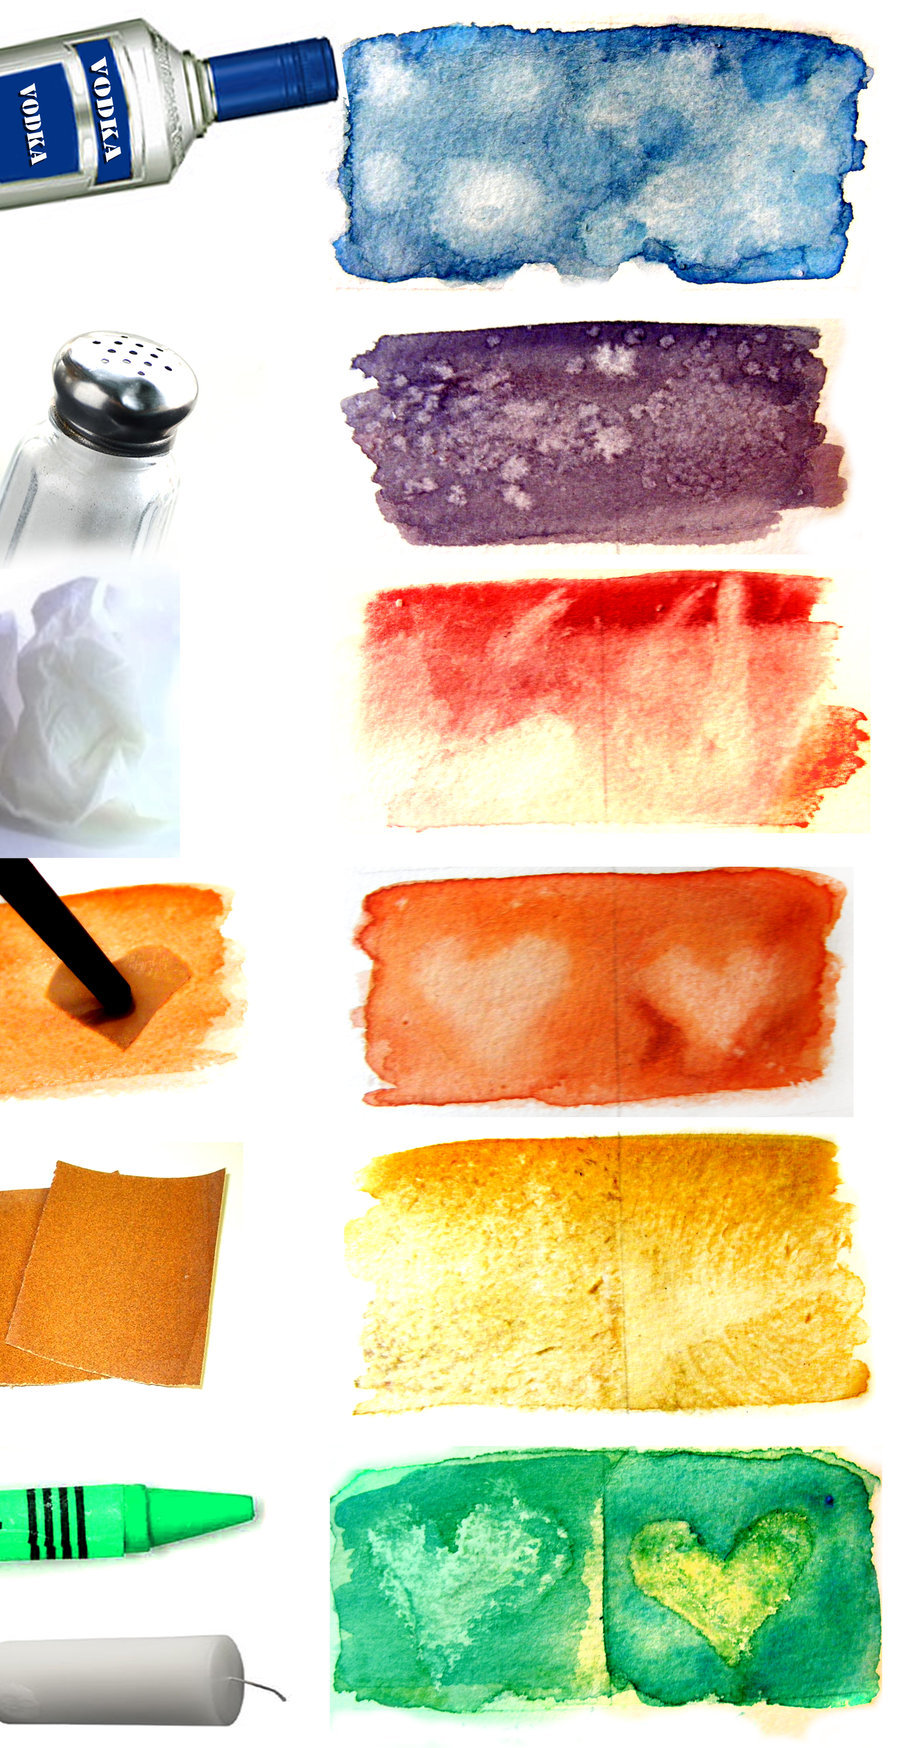 truebluemeandyou:  DIY Watercolor Texture Techniques from hatefueled on Deviant Art here. Top to bottom: alcohol, salt, blotting, stencils/erasing, sandpaper and wax. You can go to the link for more on each technique.